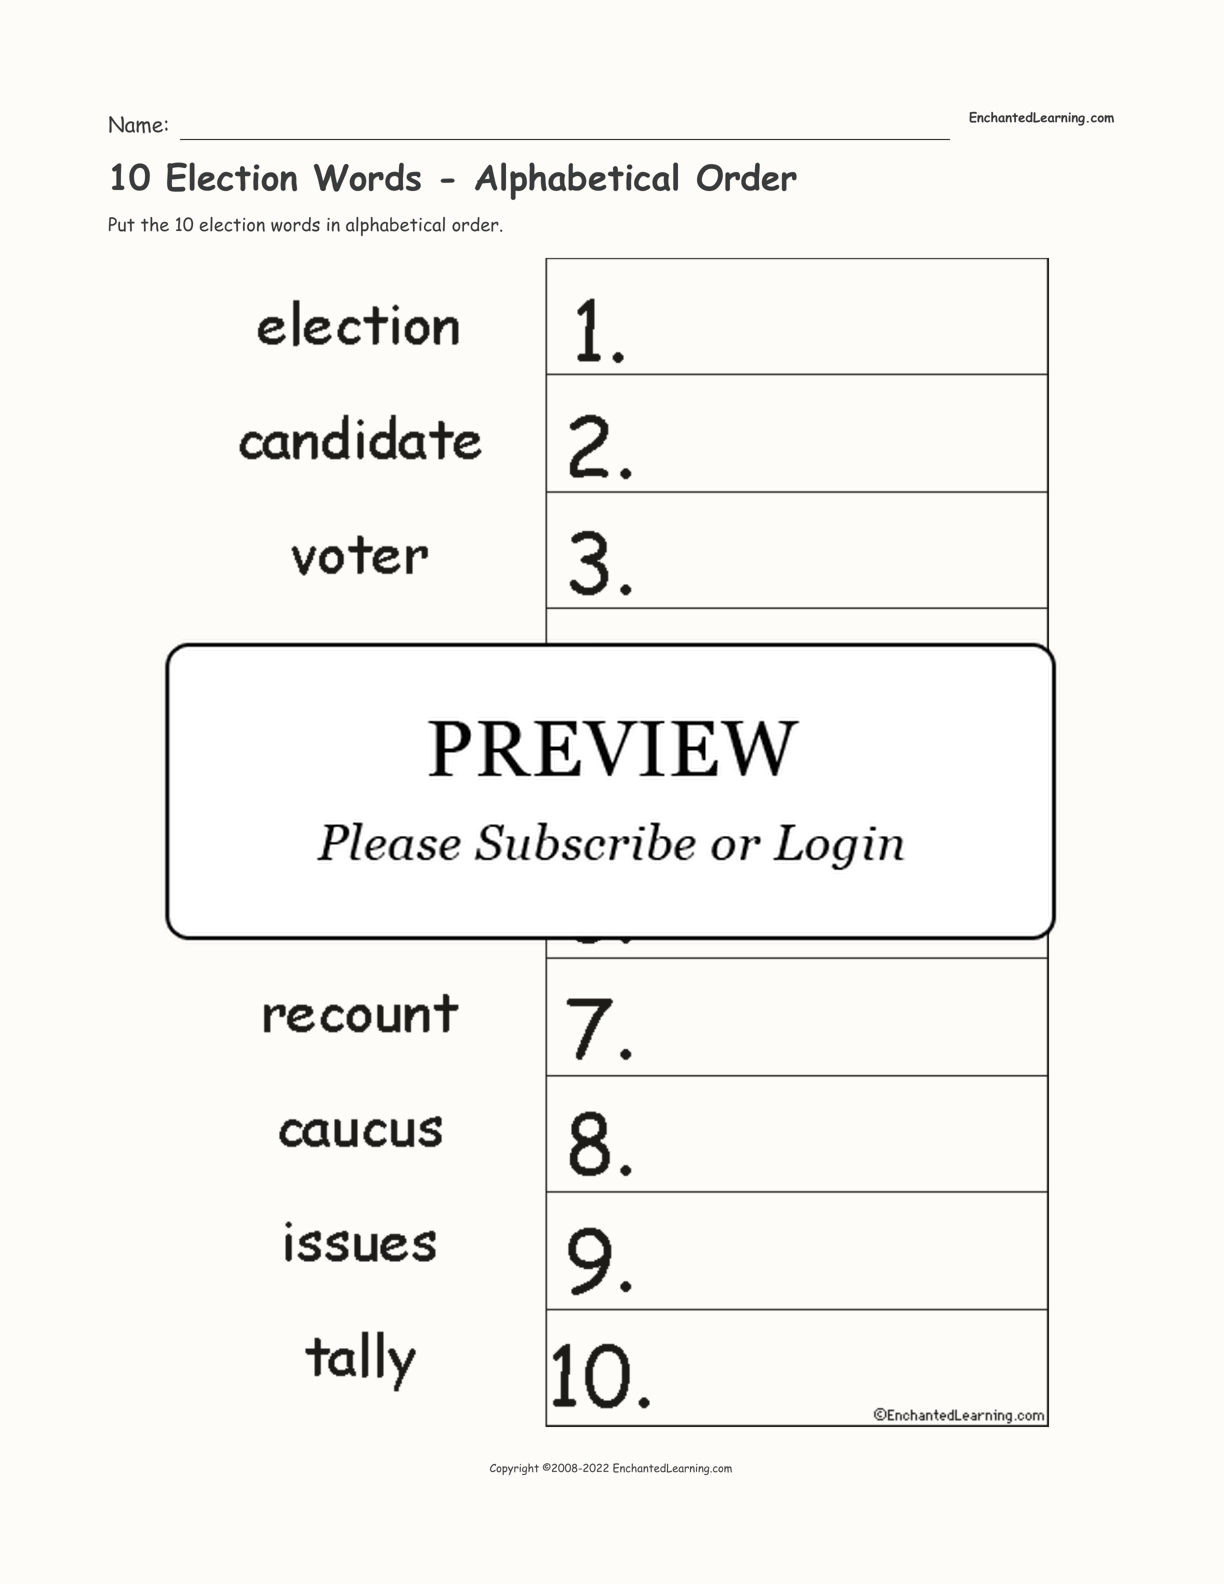 10 Election Words